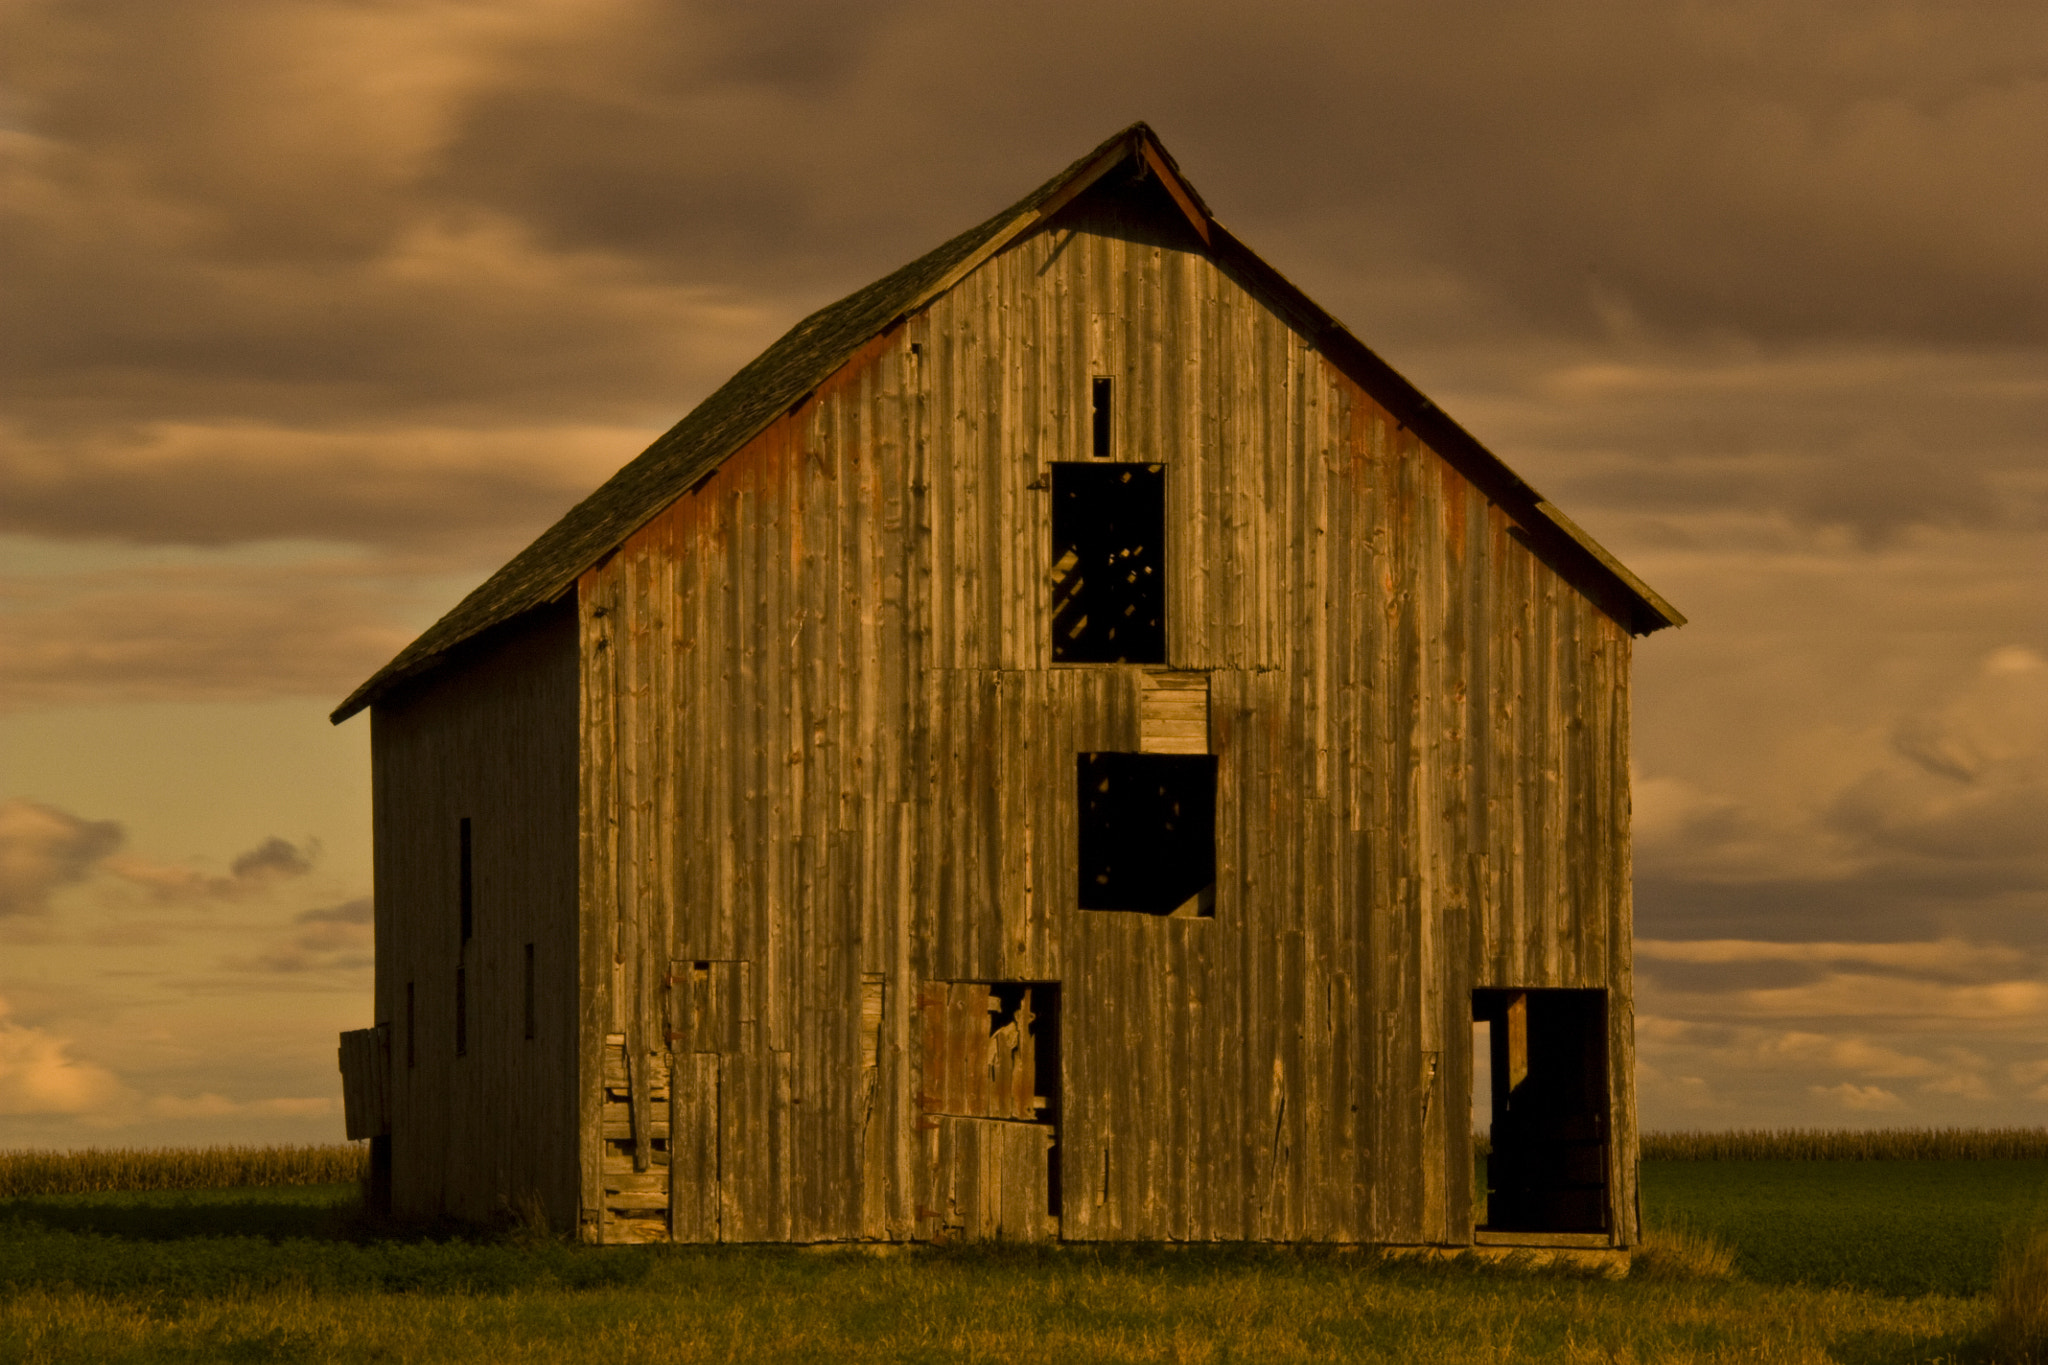 Photograph Abandoned Farm Series 1 by Robert Wood on 500px